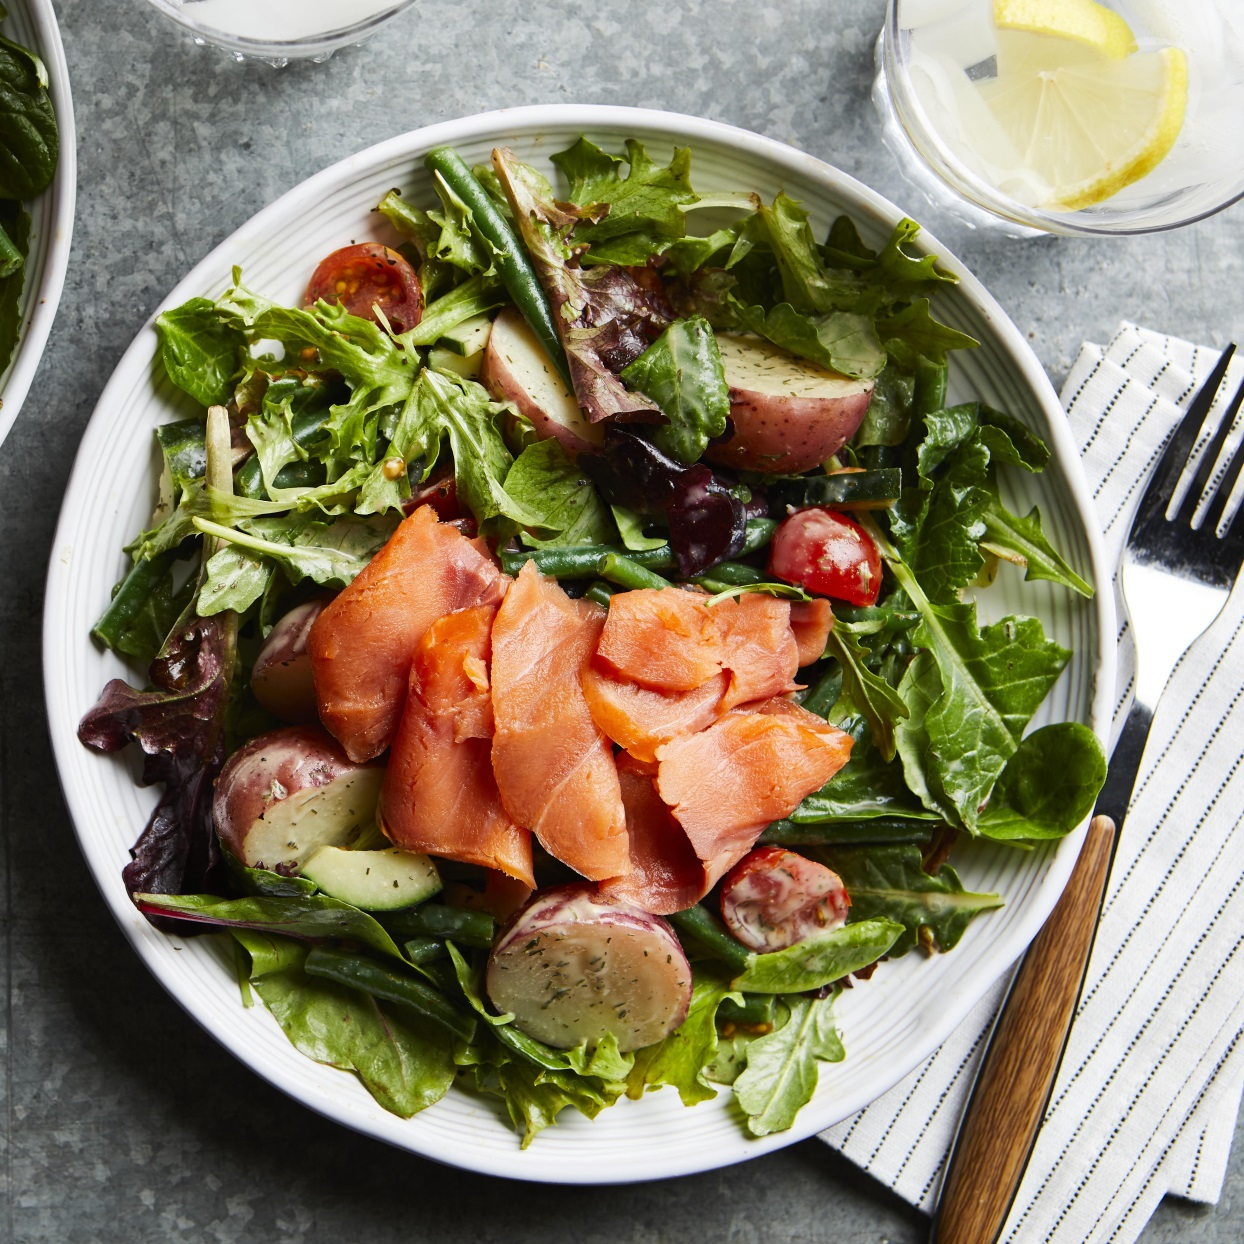 Smoked Salmon Salad Nicoise Trusted Brands